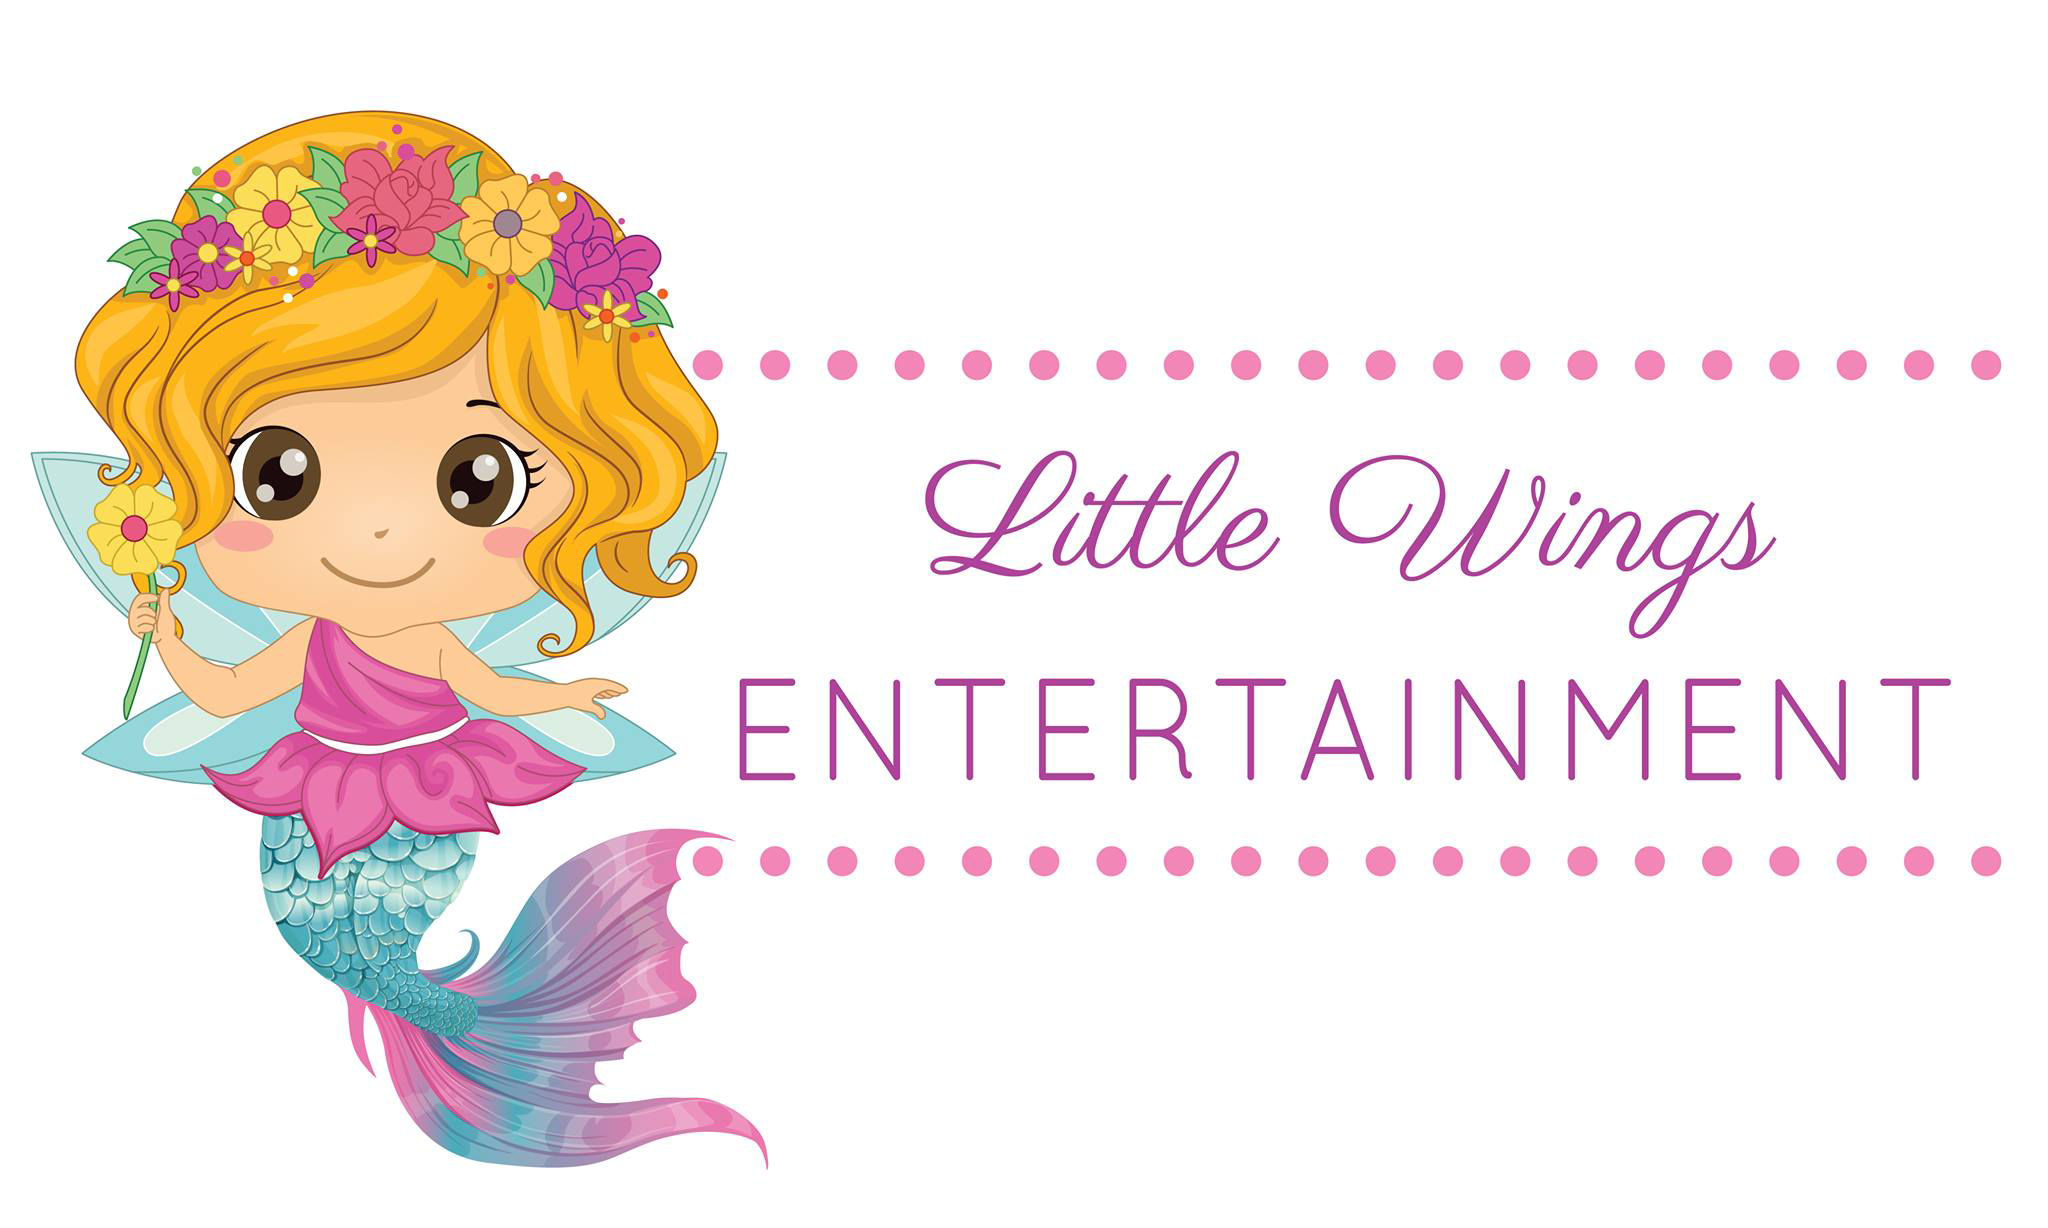 Little Wings Entertainment